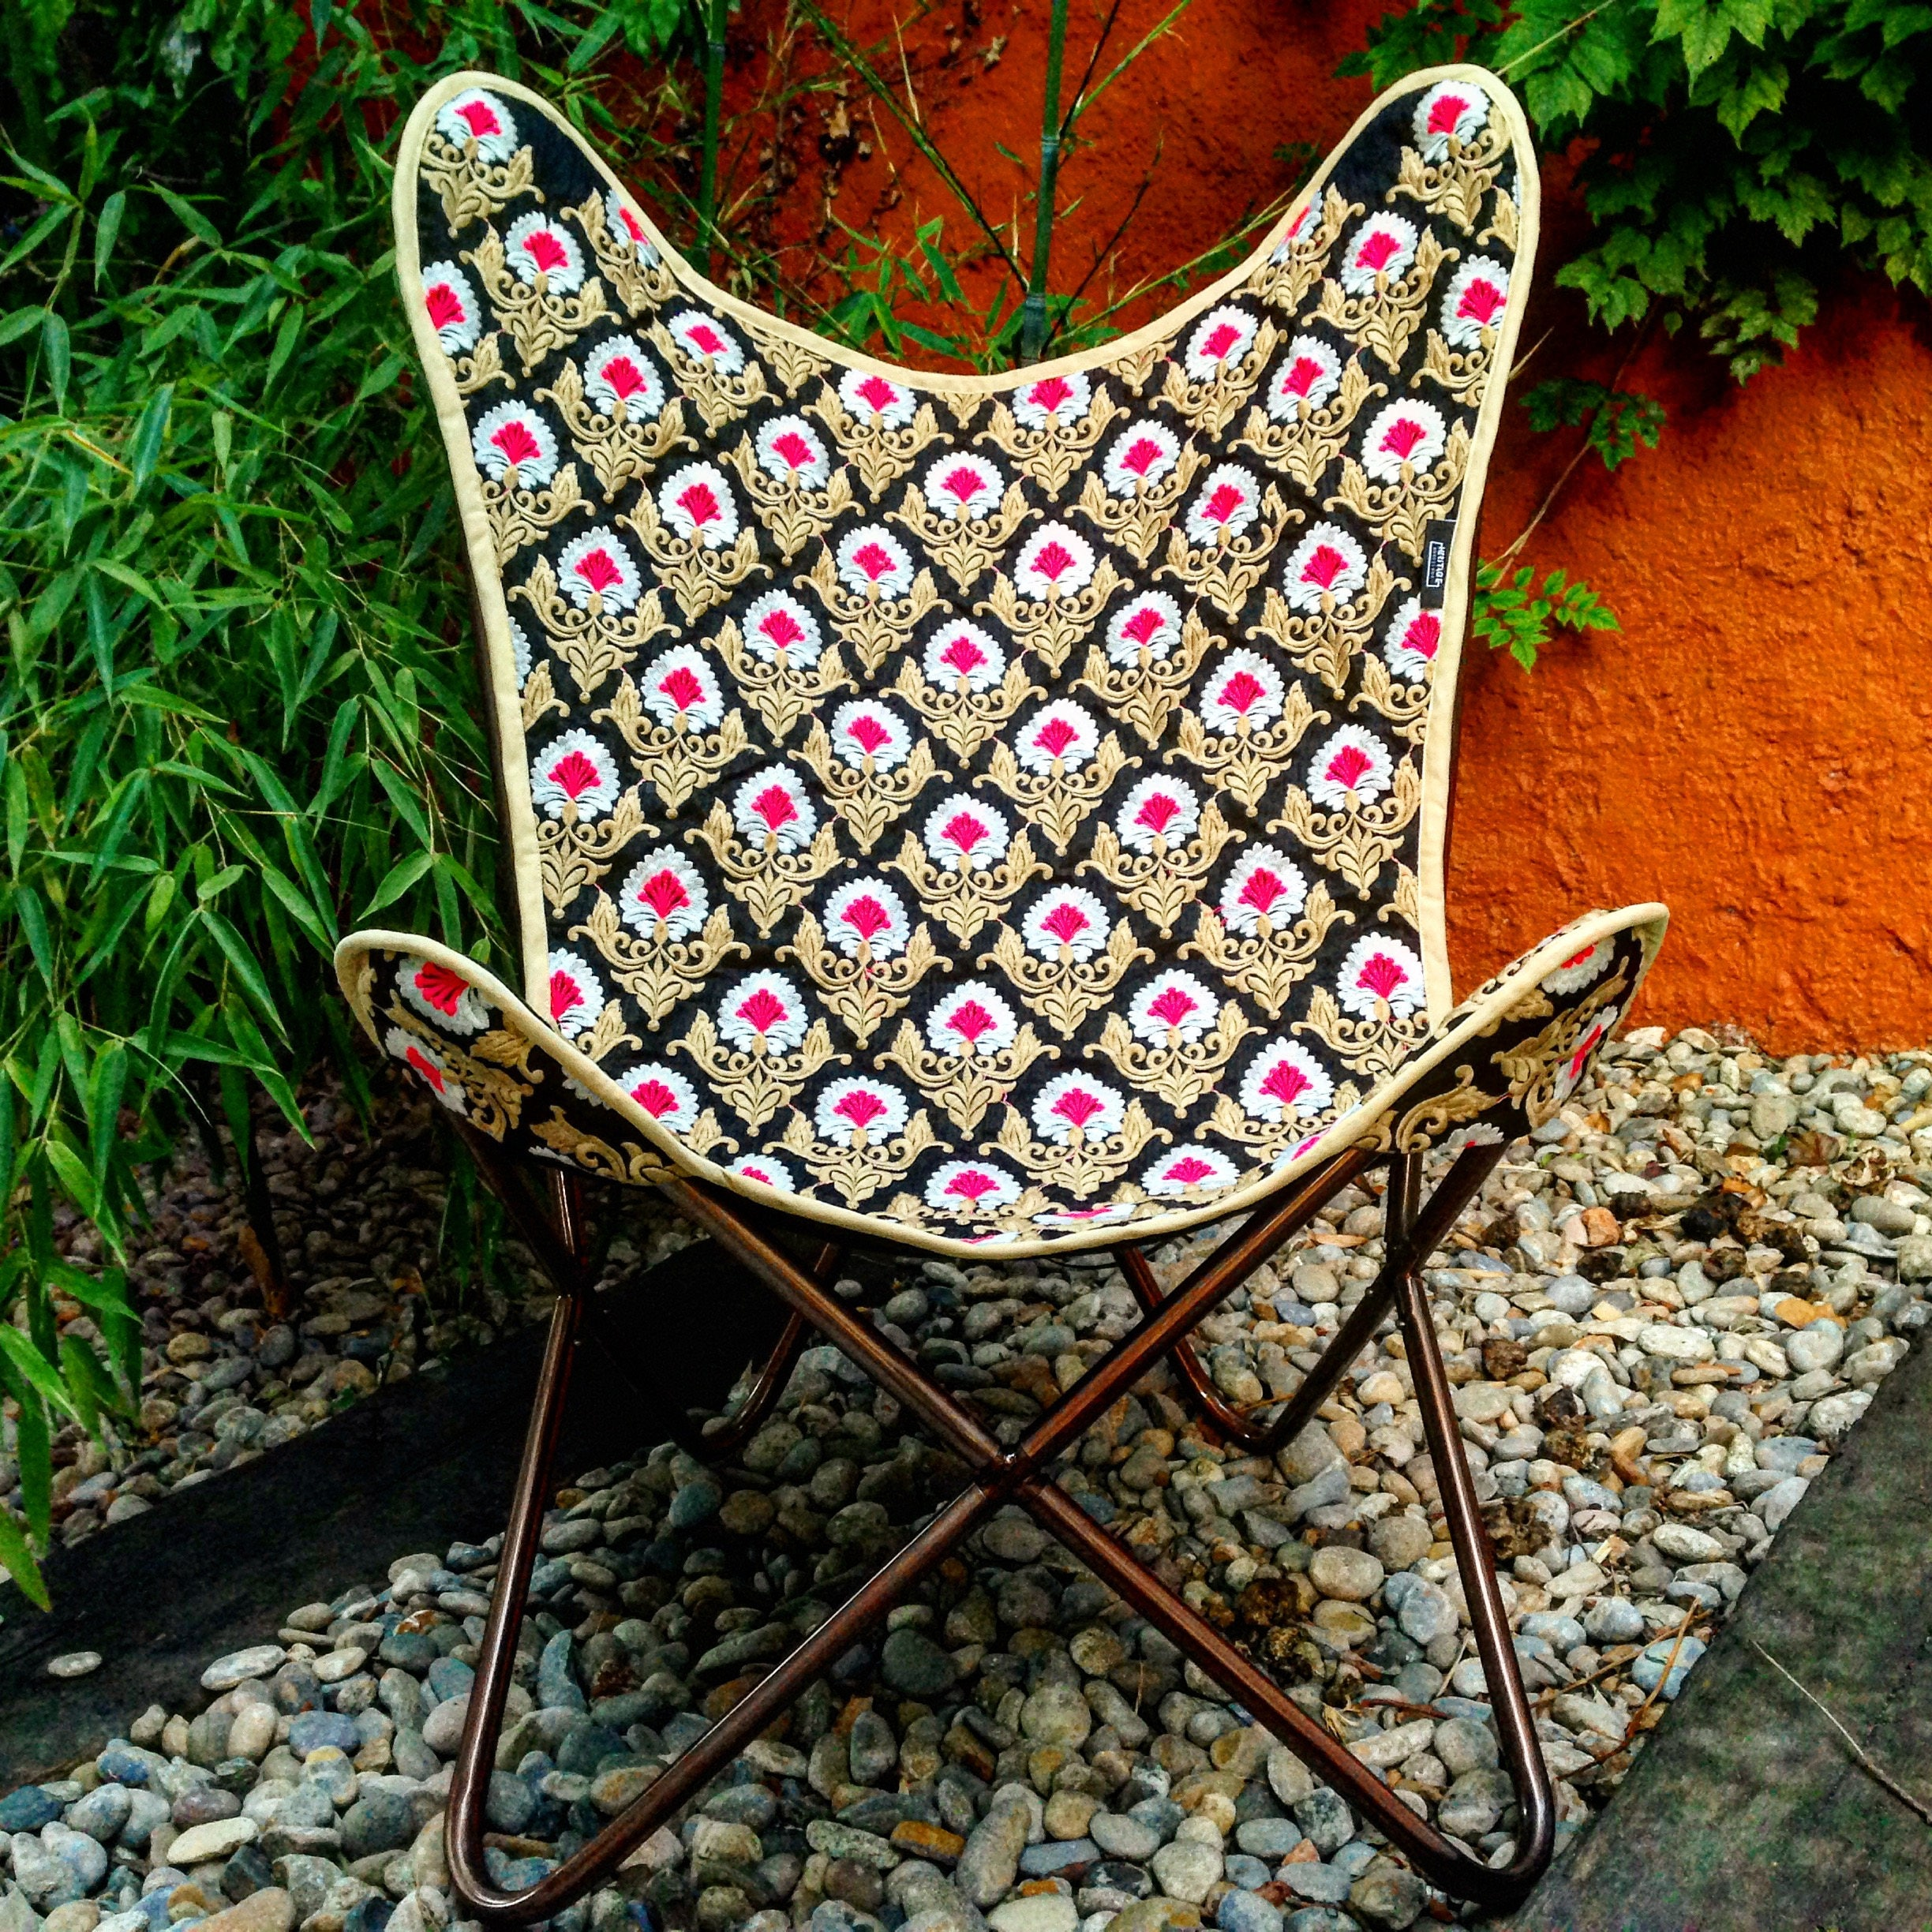 Boho chair Vintage style chair cover made with embroidered